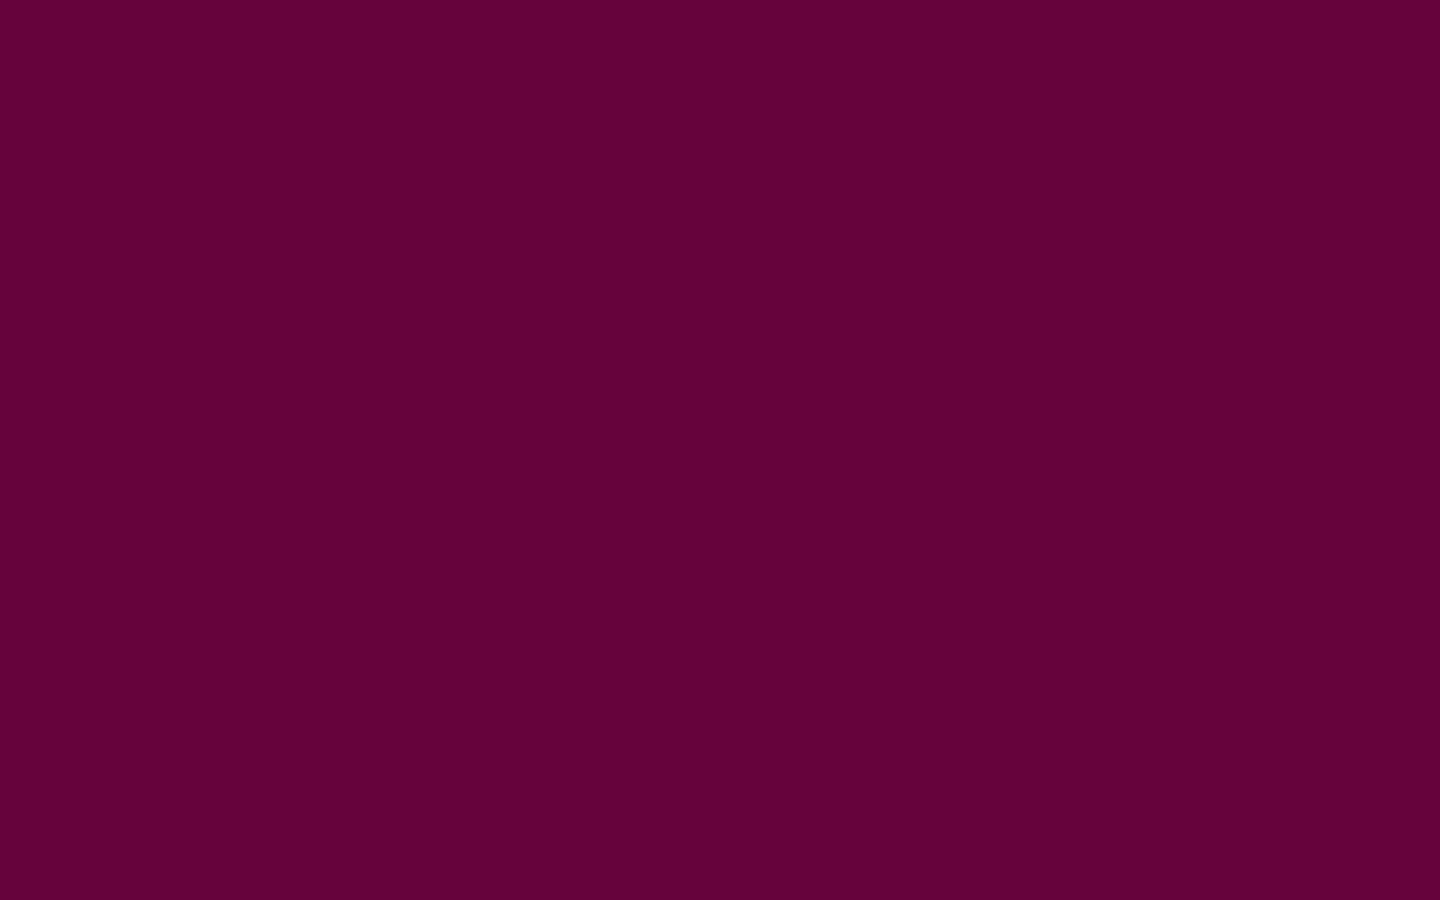 1440x900 Tyrian Purple Solid Color Background